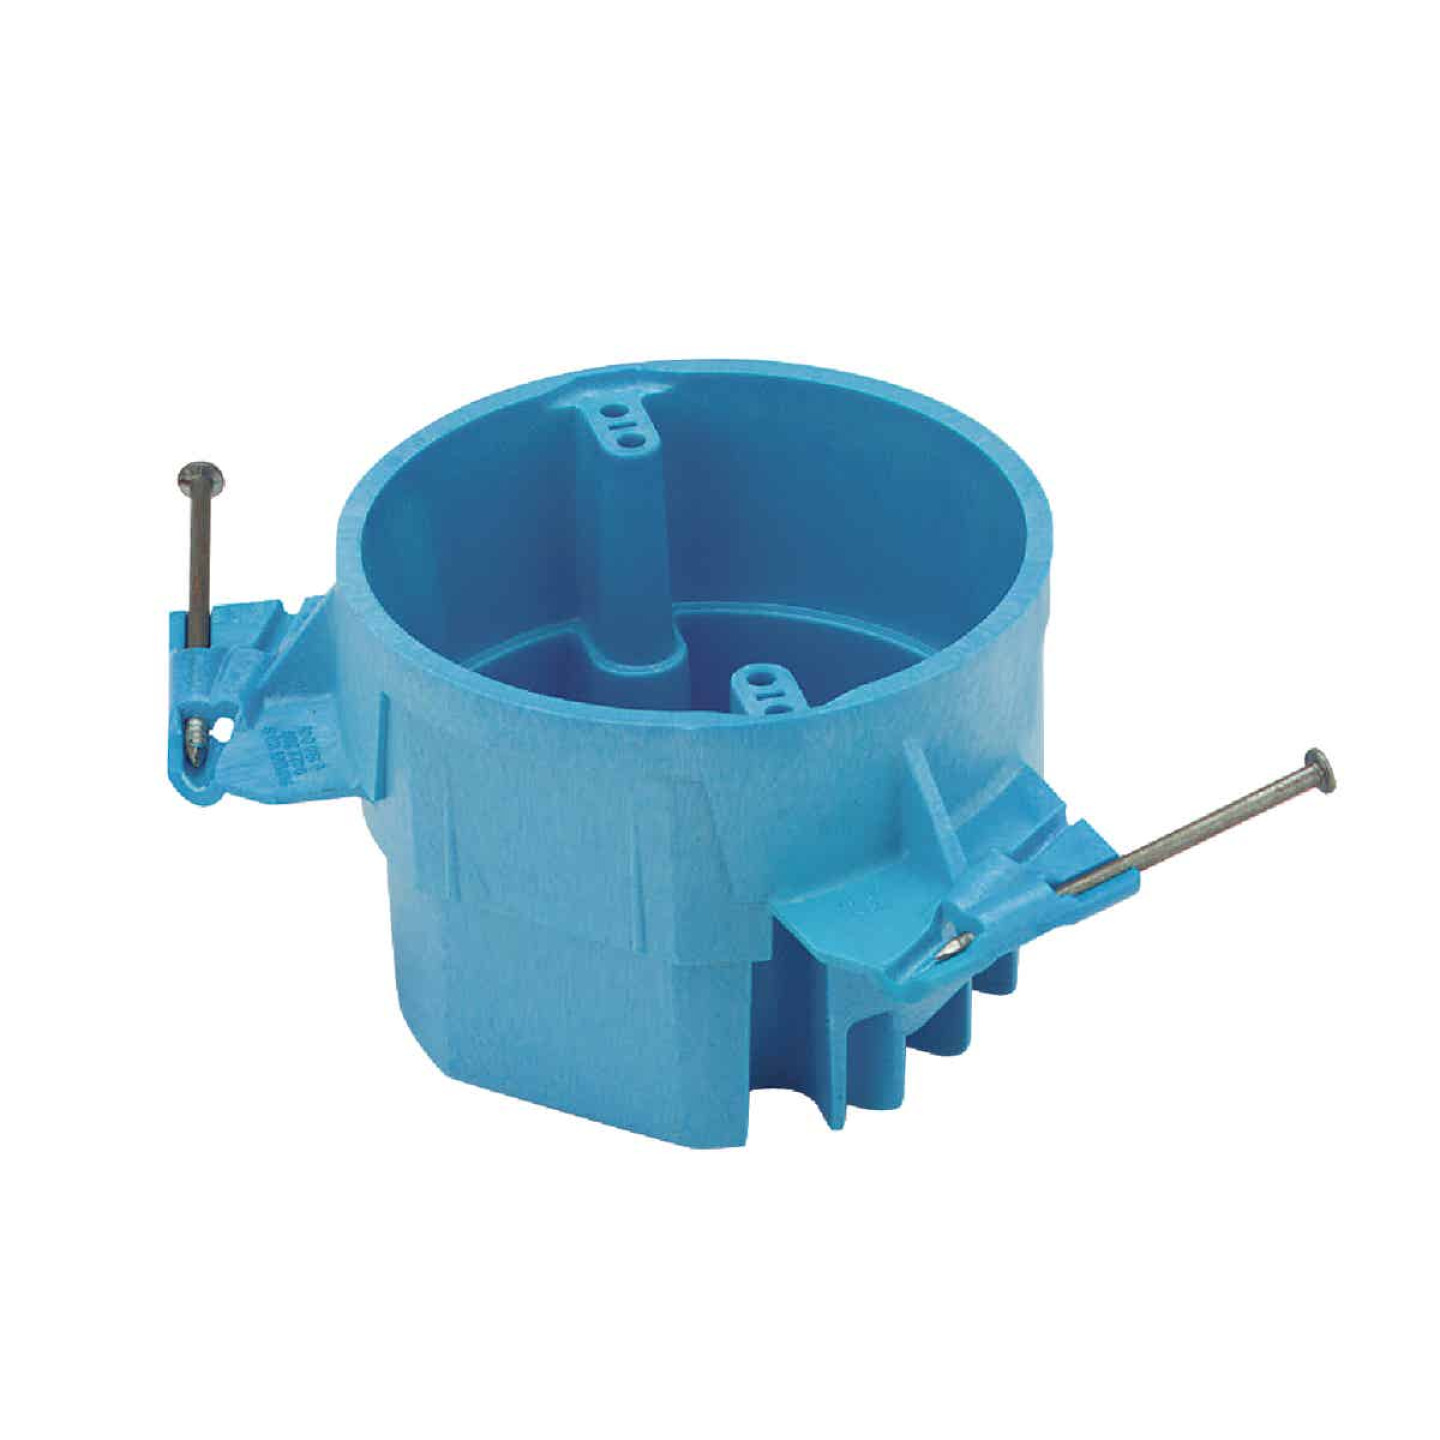 Carlon SuperBlue 50 Lb. Rating Nail On Thermoplastic Molded Ceiling Box Image 1